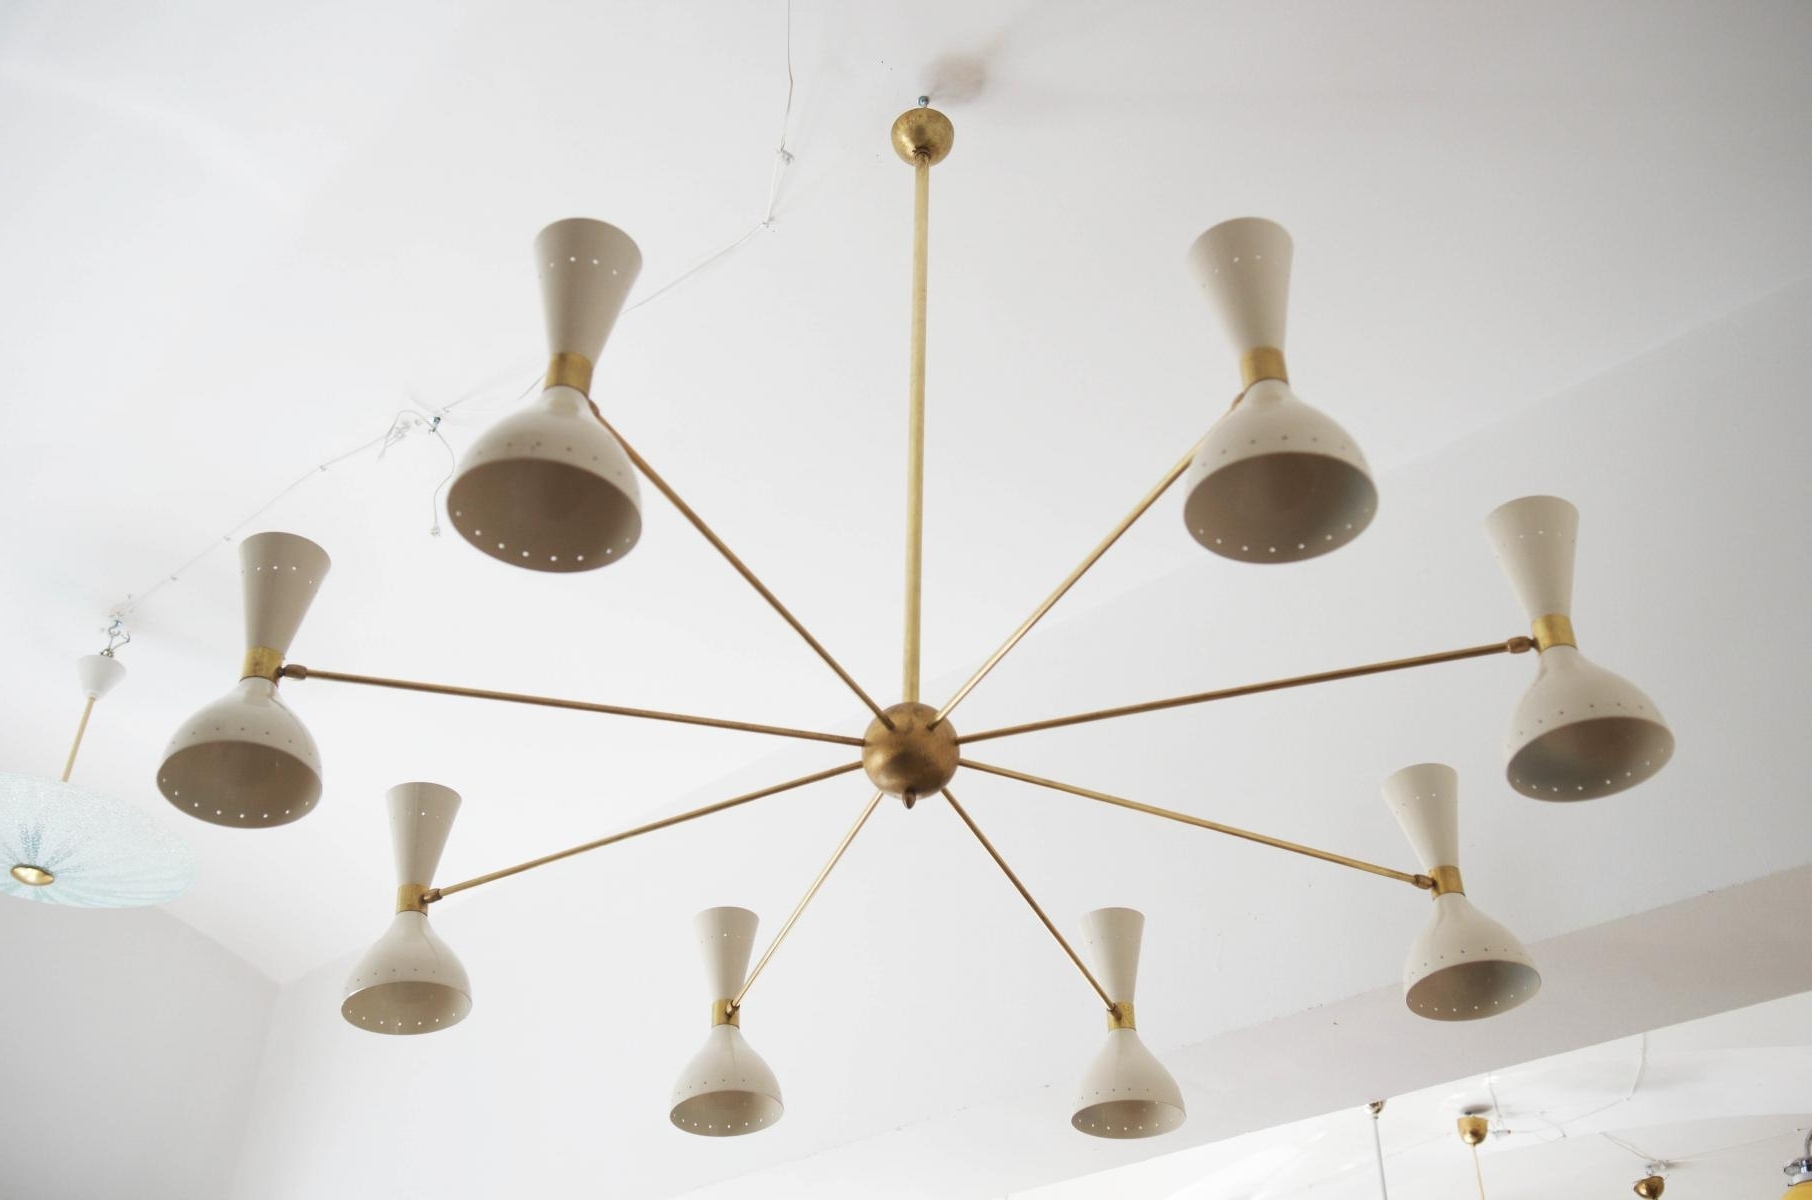 Newest Large Brass Chandelier With Regard To Mid Century Large Brass Chandelier, 1950s For Sale At Pamono (View 2 of 20)